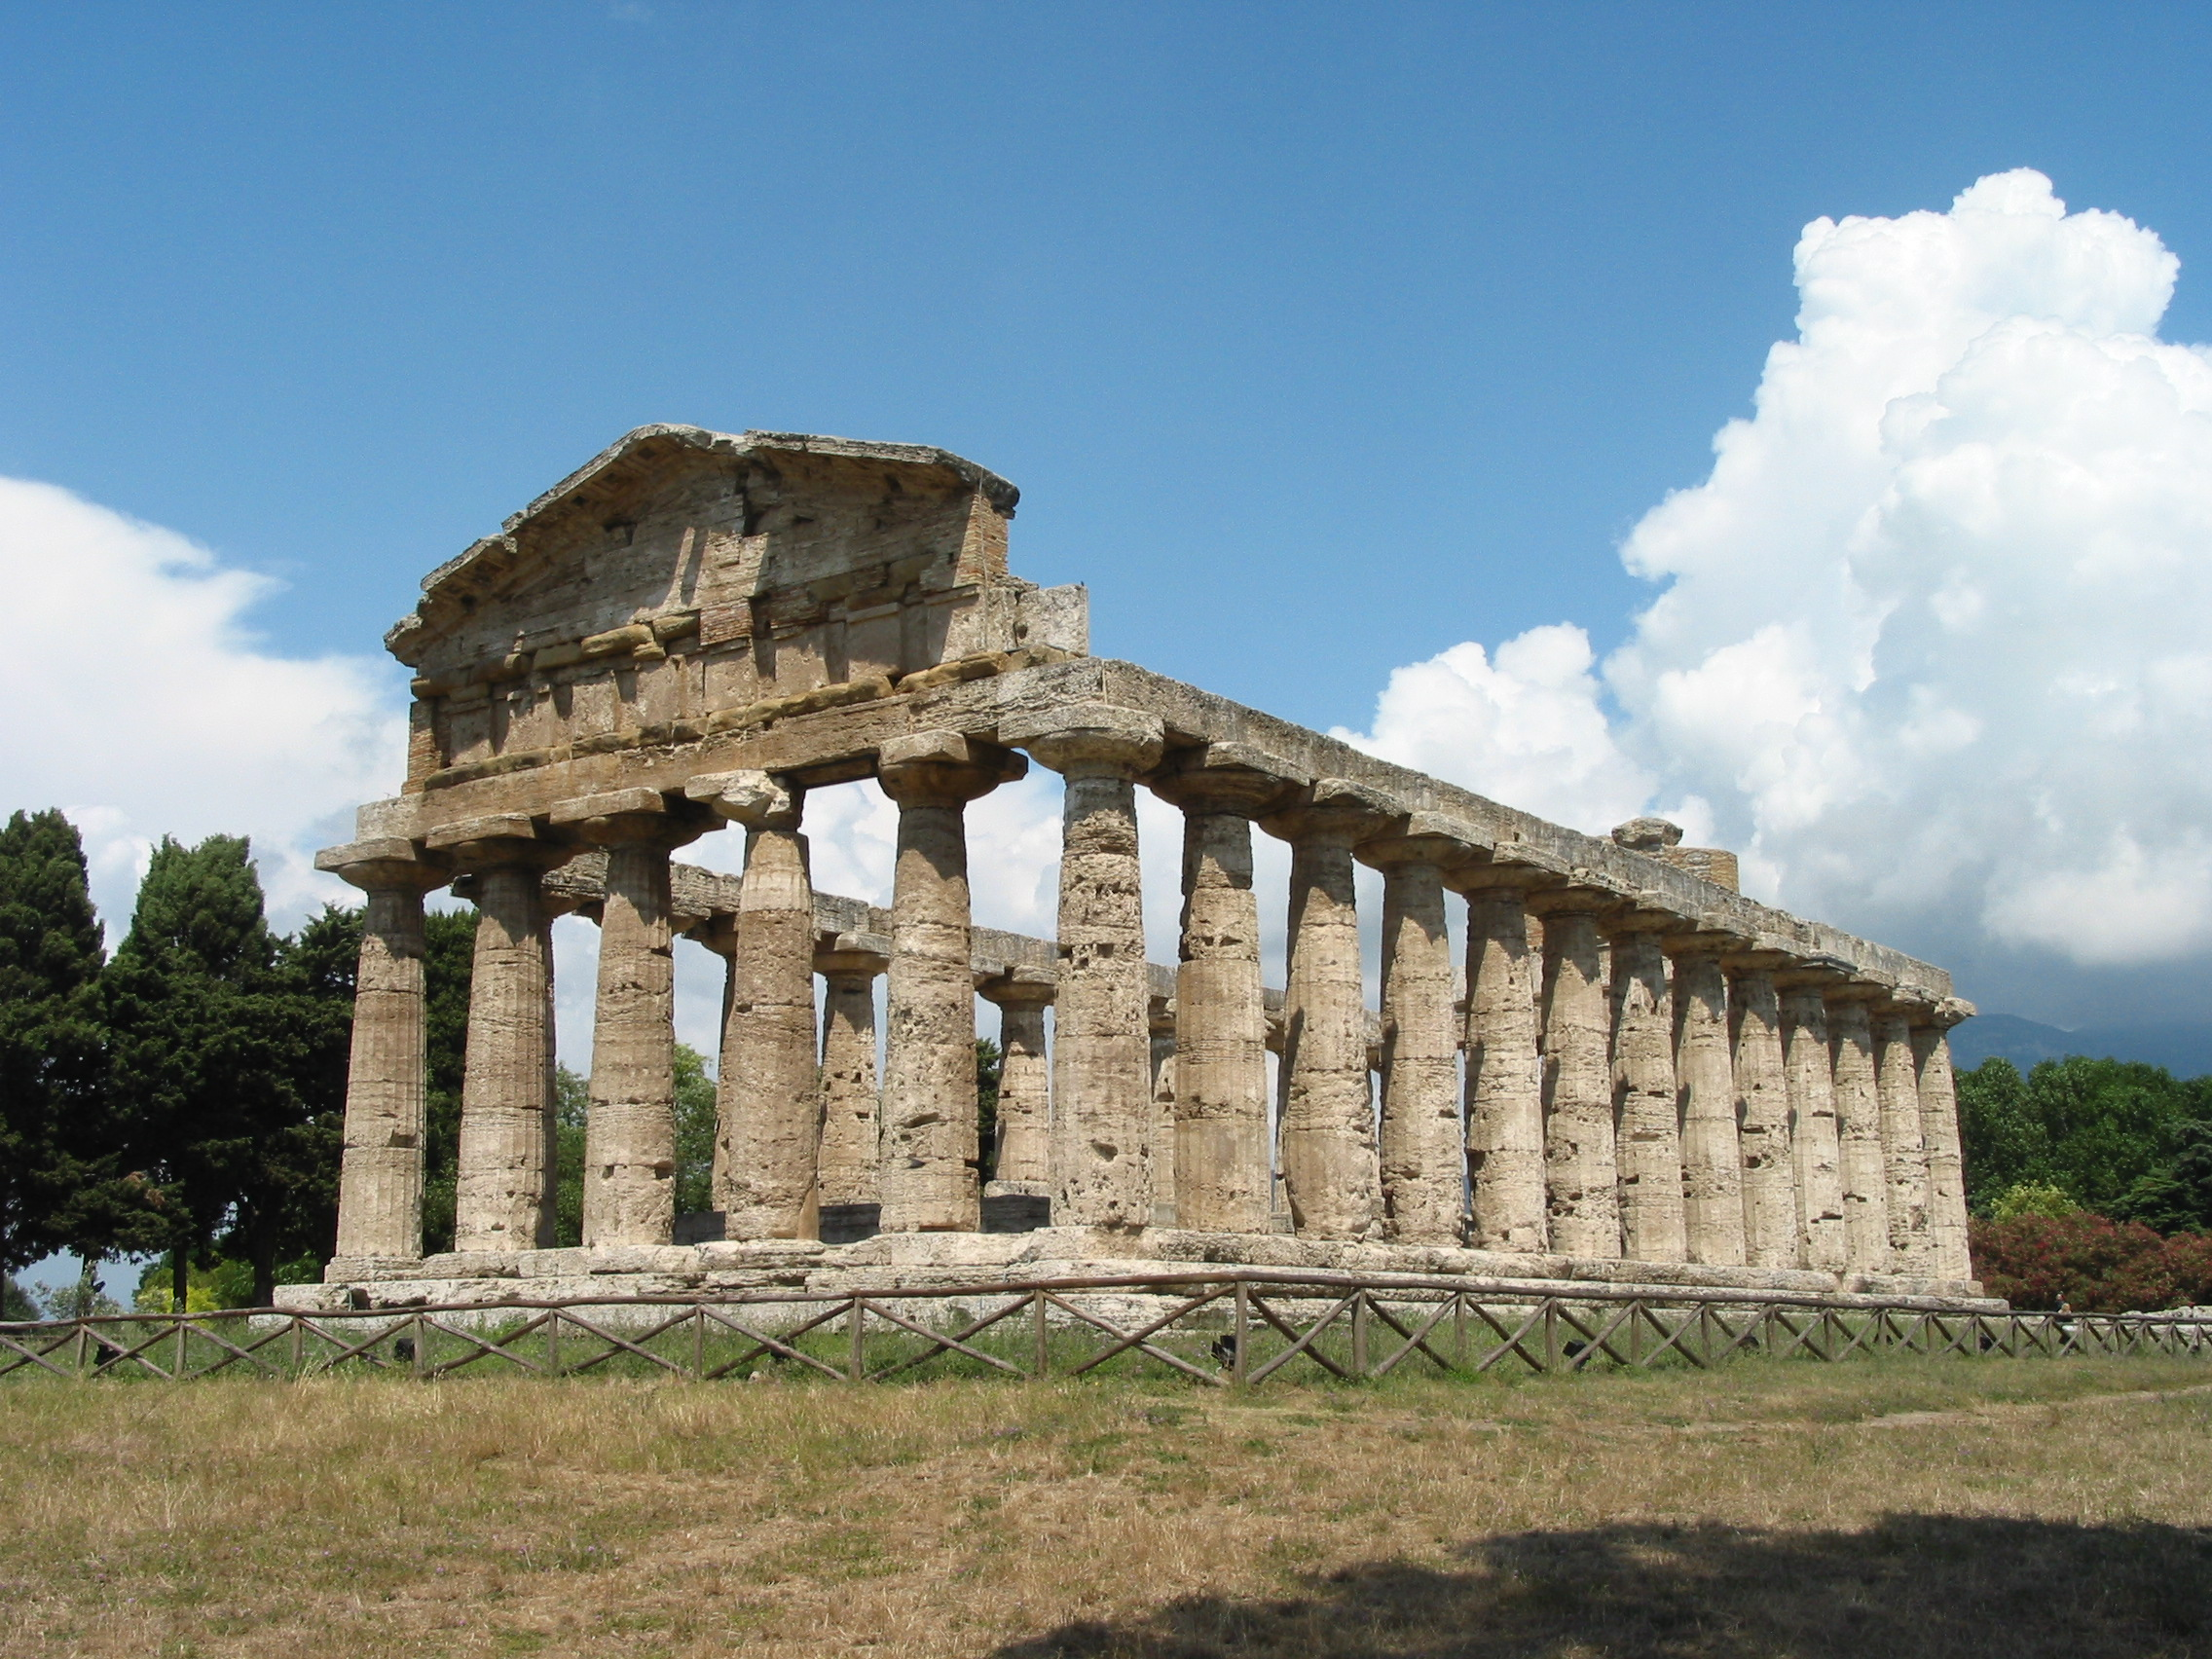 temple of athena paestum analysis Paestum, also known by its original greek name as poseidonia the third temple, which was dedicated to athena, is also known as the temple of ceres the oldest temple is the temple of hera i which was built c 550 bce.